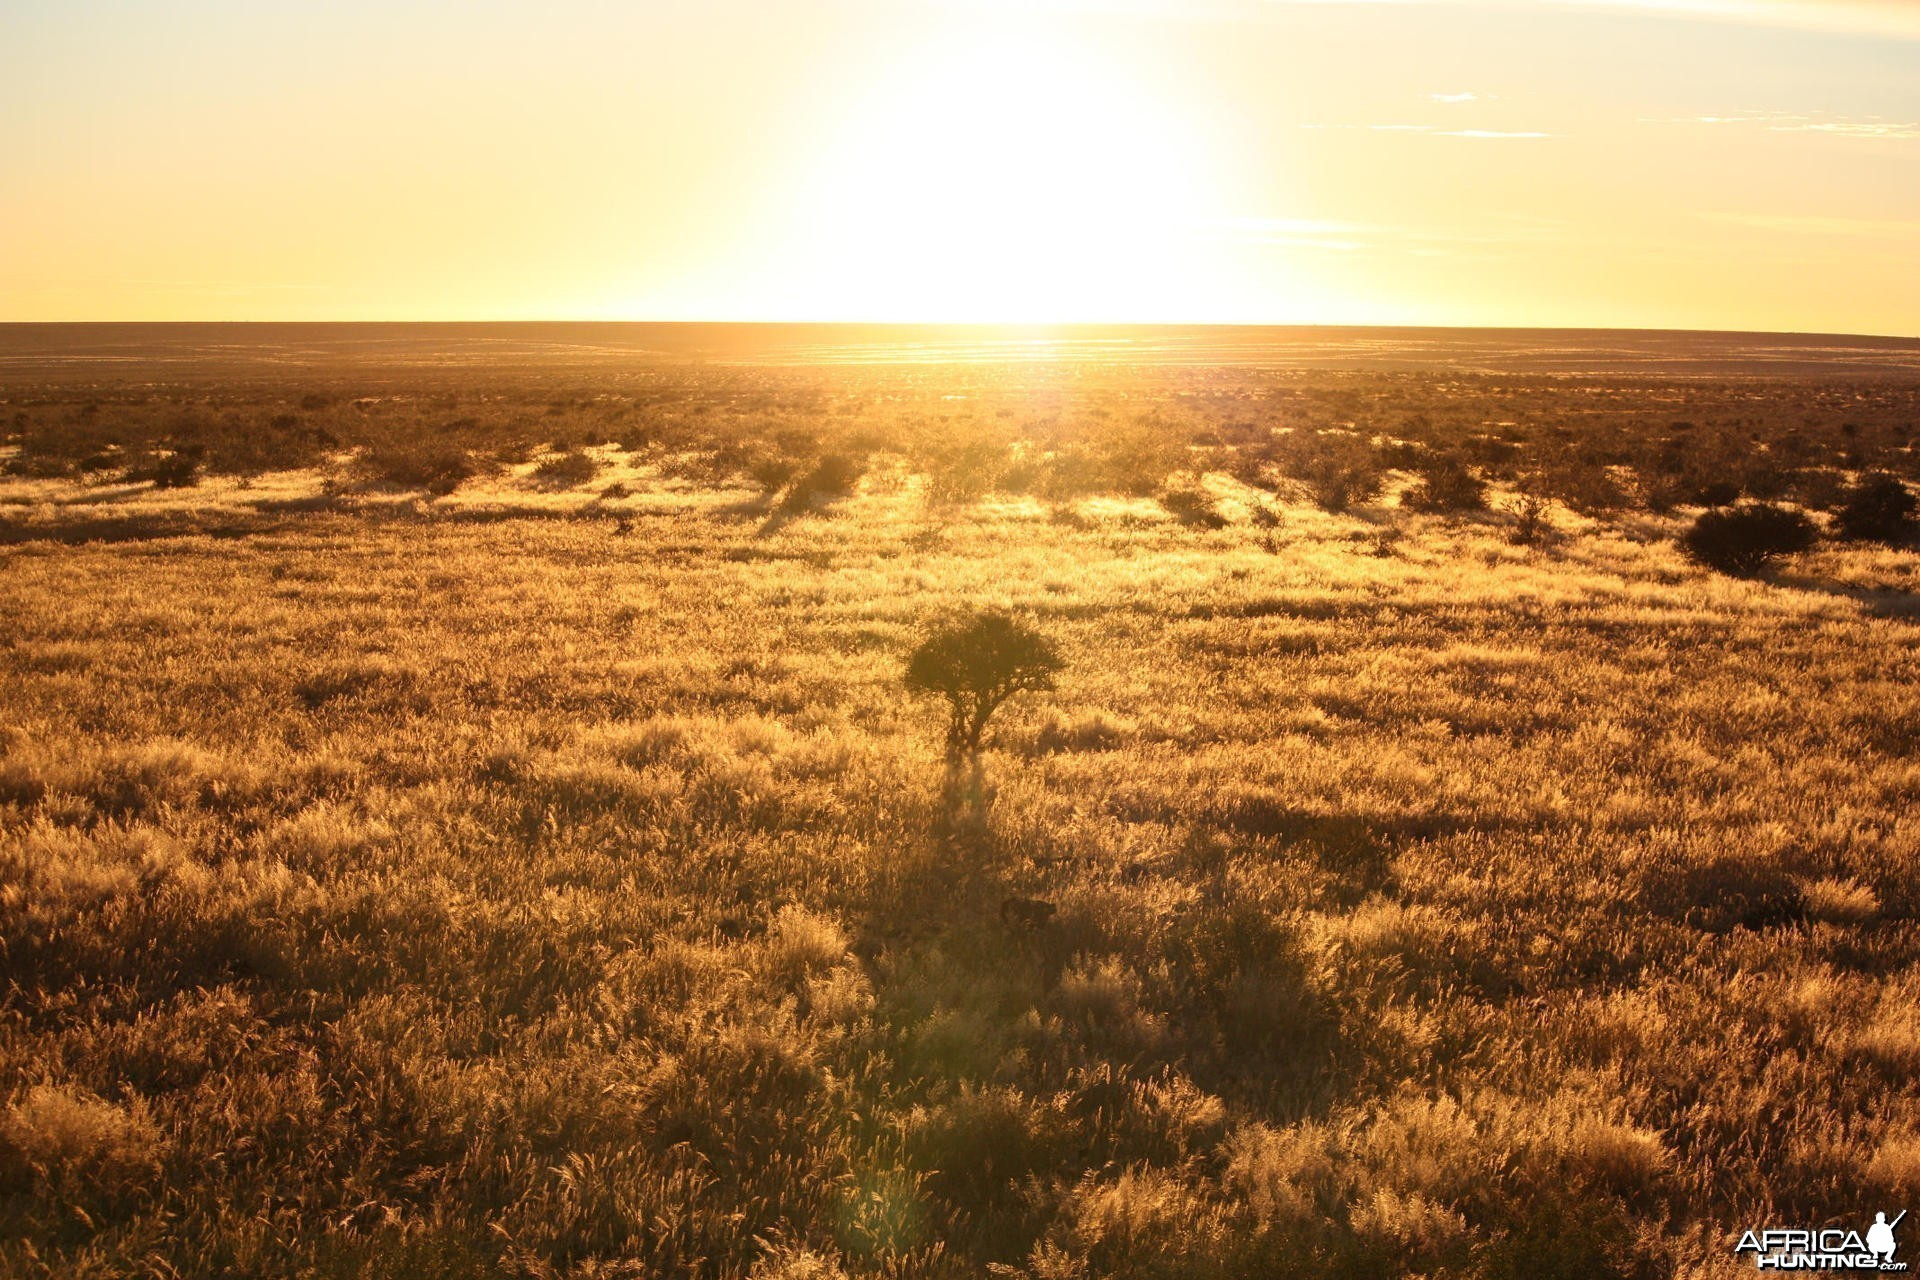 African Sunrises, here at the edge of the Kalahari - always beautiful